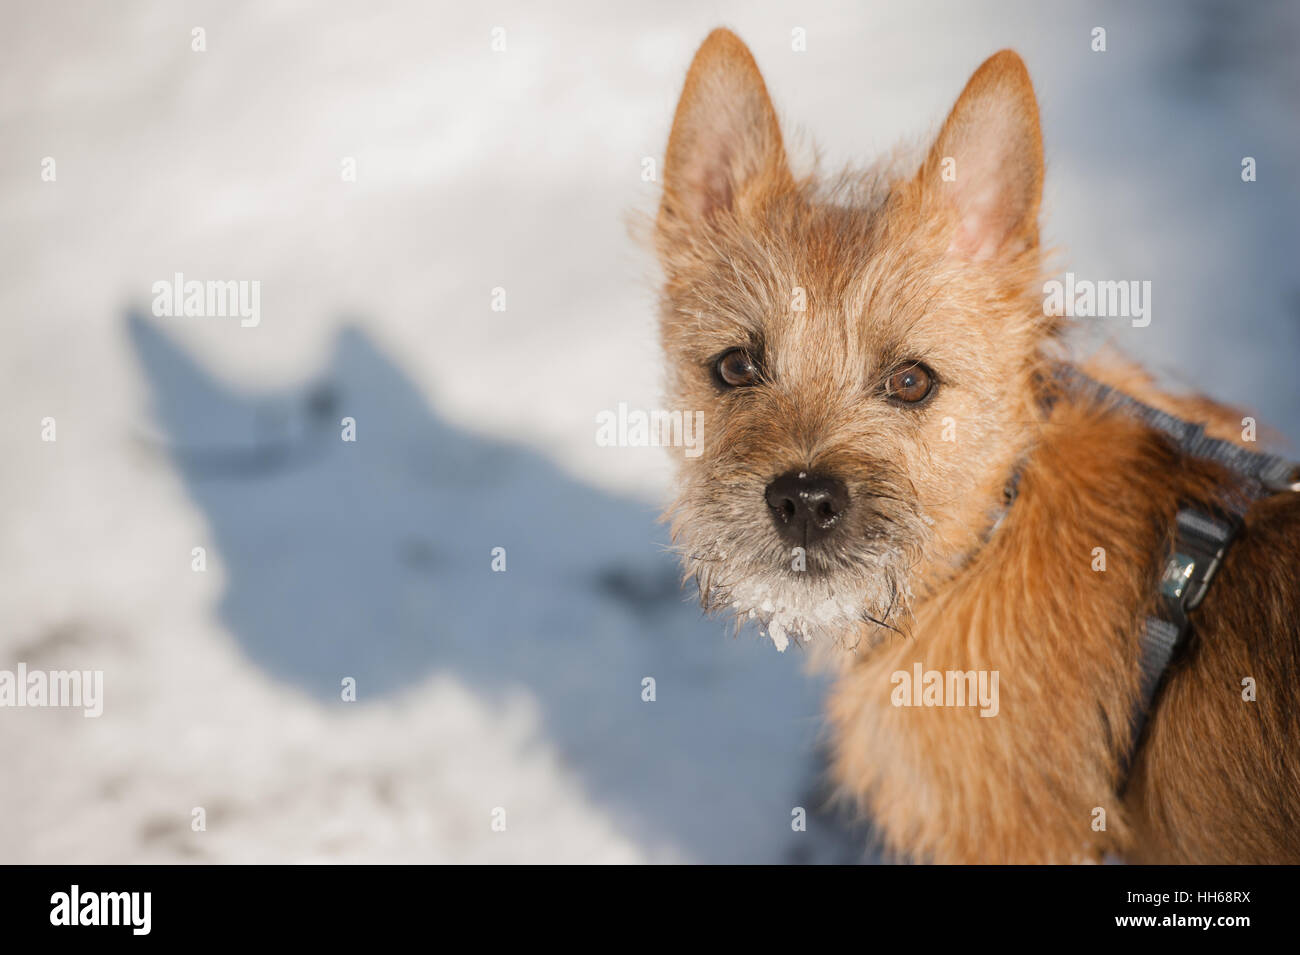 Good Cairn Terrier Ball Adorable Dog - cute-cairn-terrier-puppy-playing-outside-in-cold-winter-snow-young-HH68RX  Image_104270  .jpg